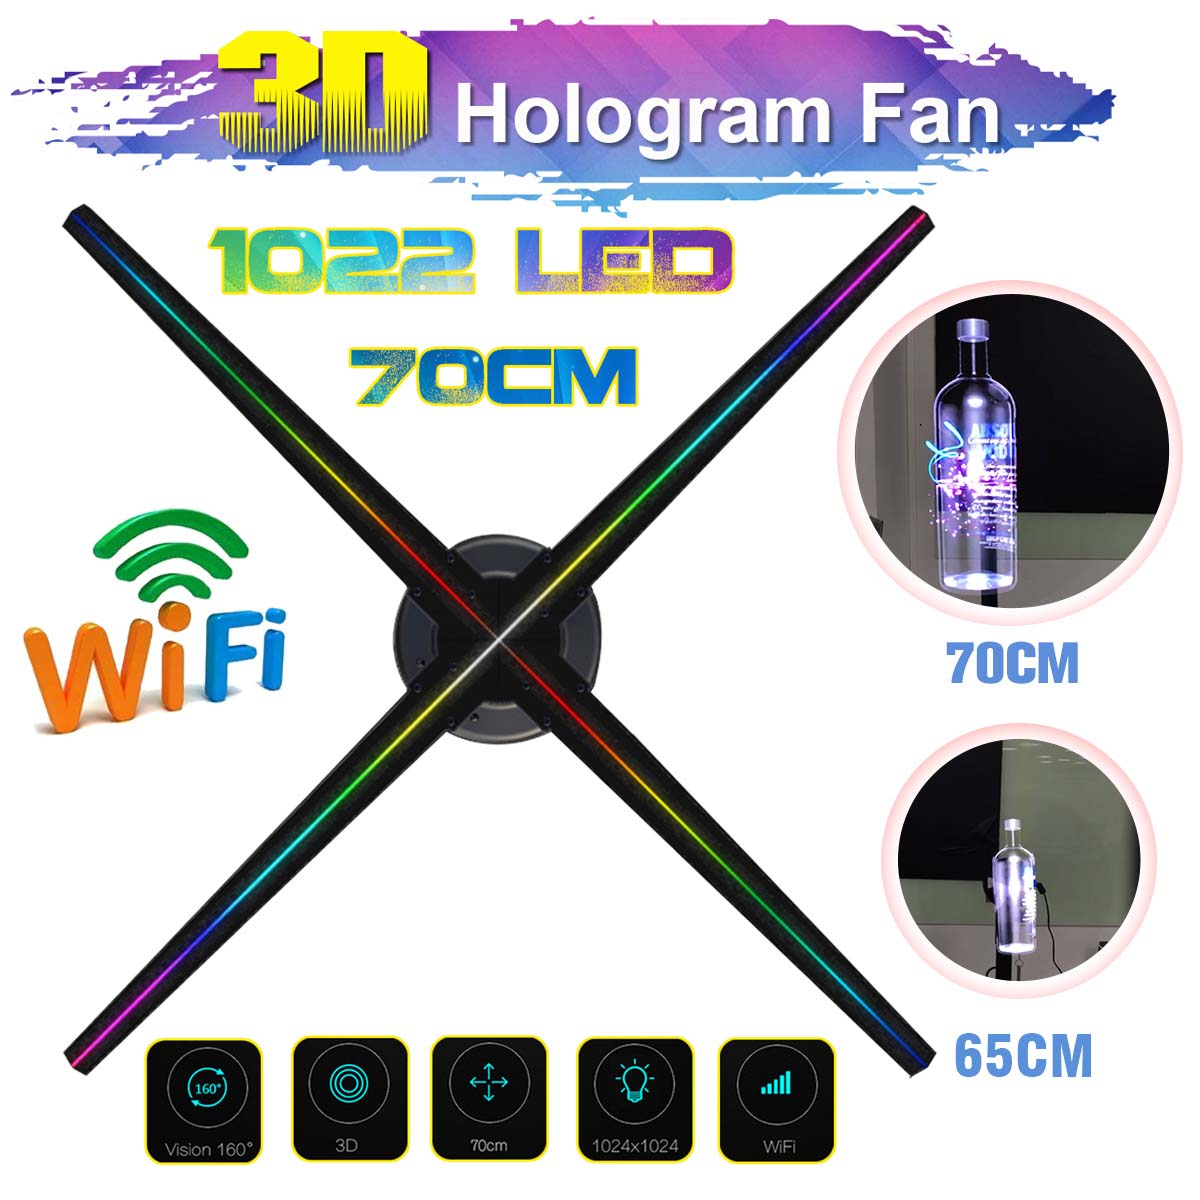 Upgraded 70cm Wifi 3D Holographic Projector Fan Hologram Player LED Video Display Fan Advertising Light APP Control Four Axil(China)